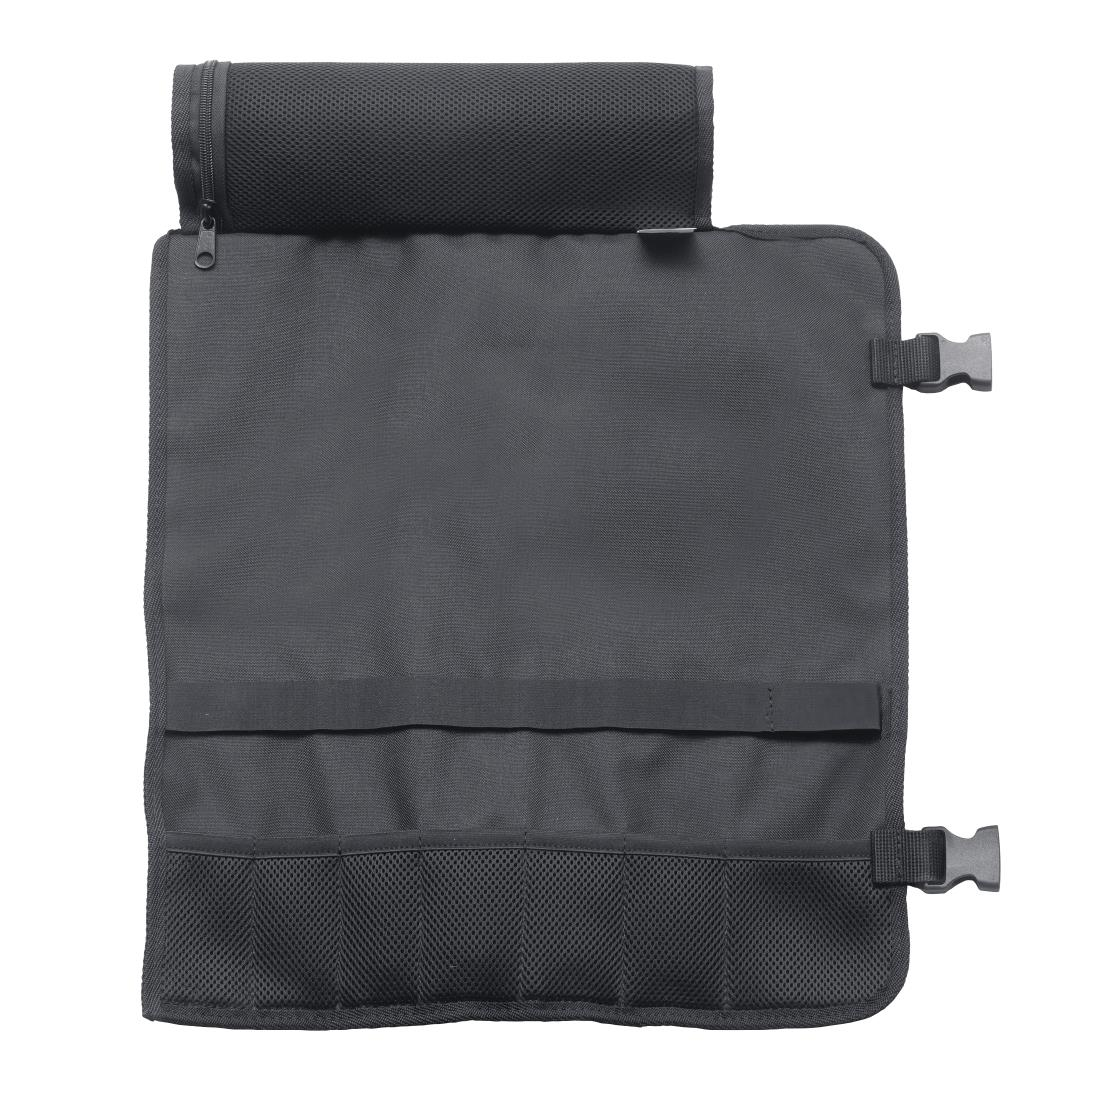 Dick Black Textile Roll Bag 6 Slots